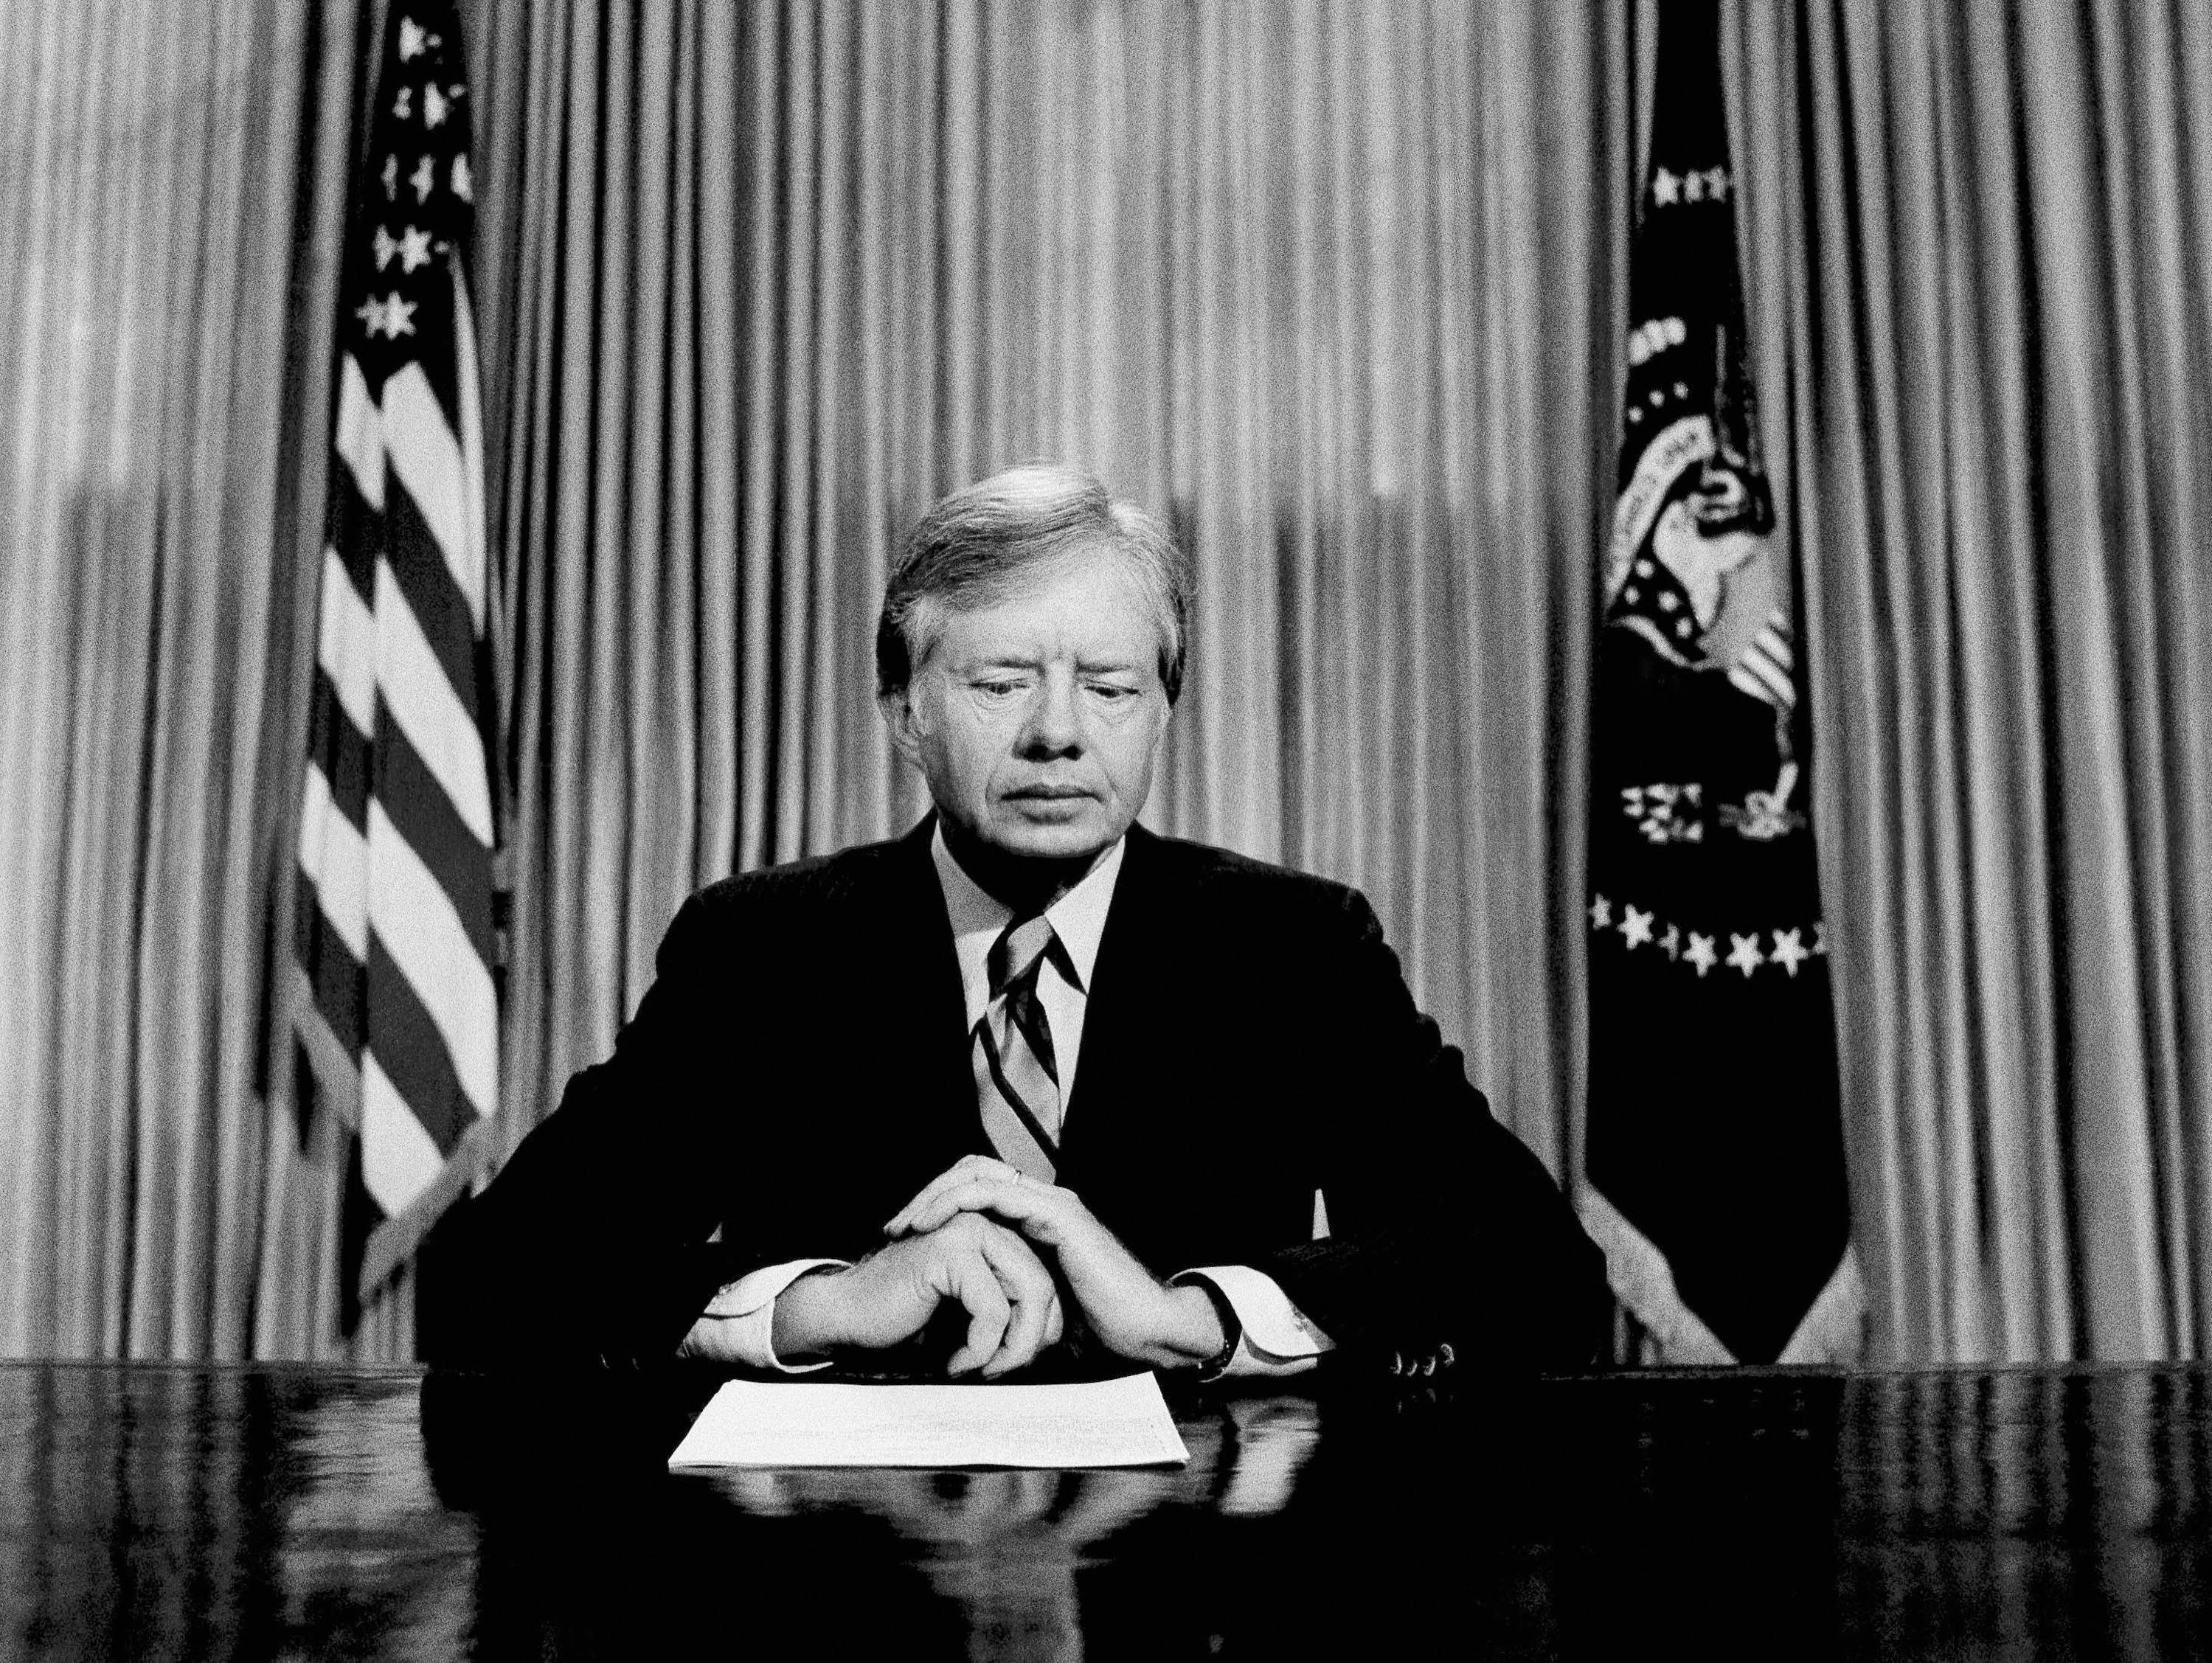 President Carter prepares to make a national television address from the Oval Office at the White House in Washington, on the failed mission to rescue the Iran hostages on April 25, 1980.